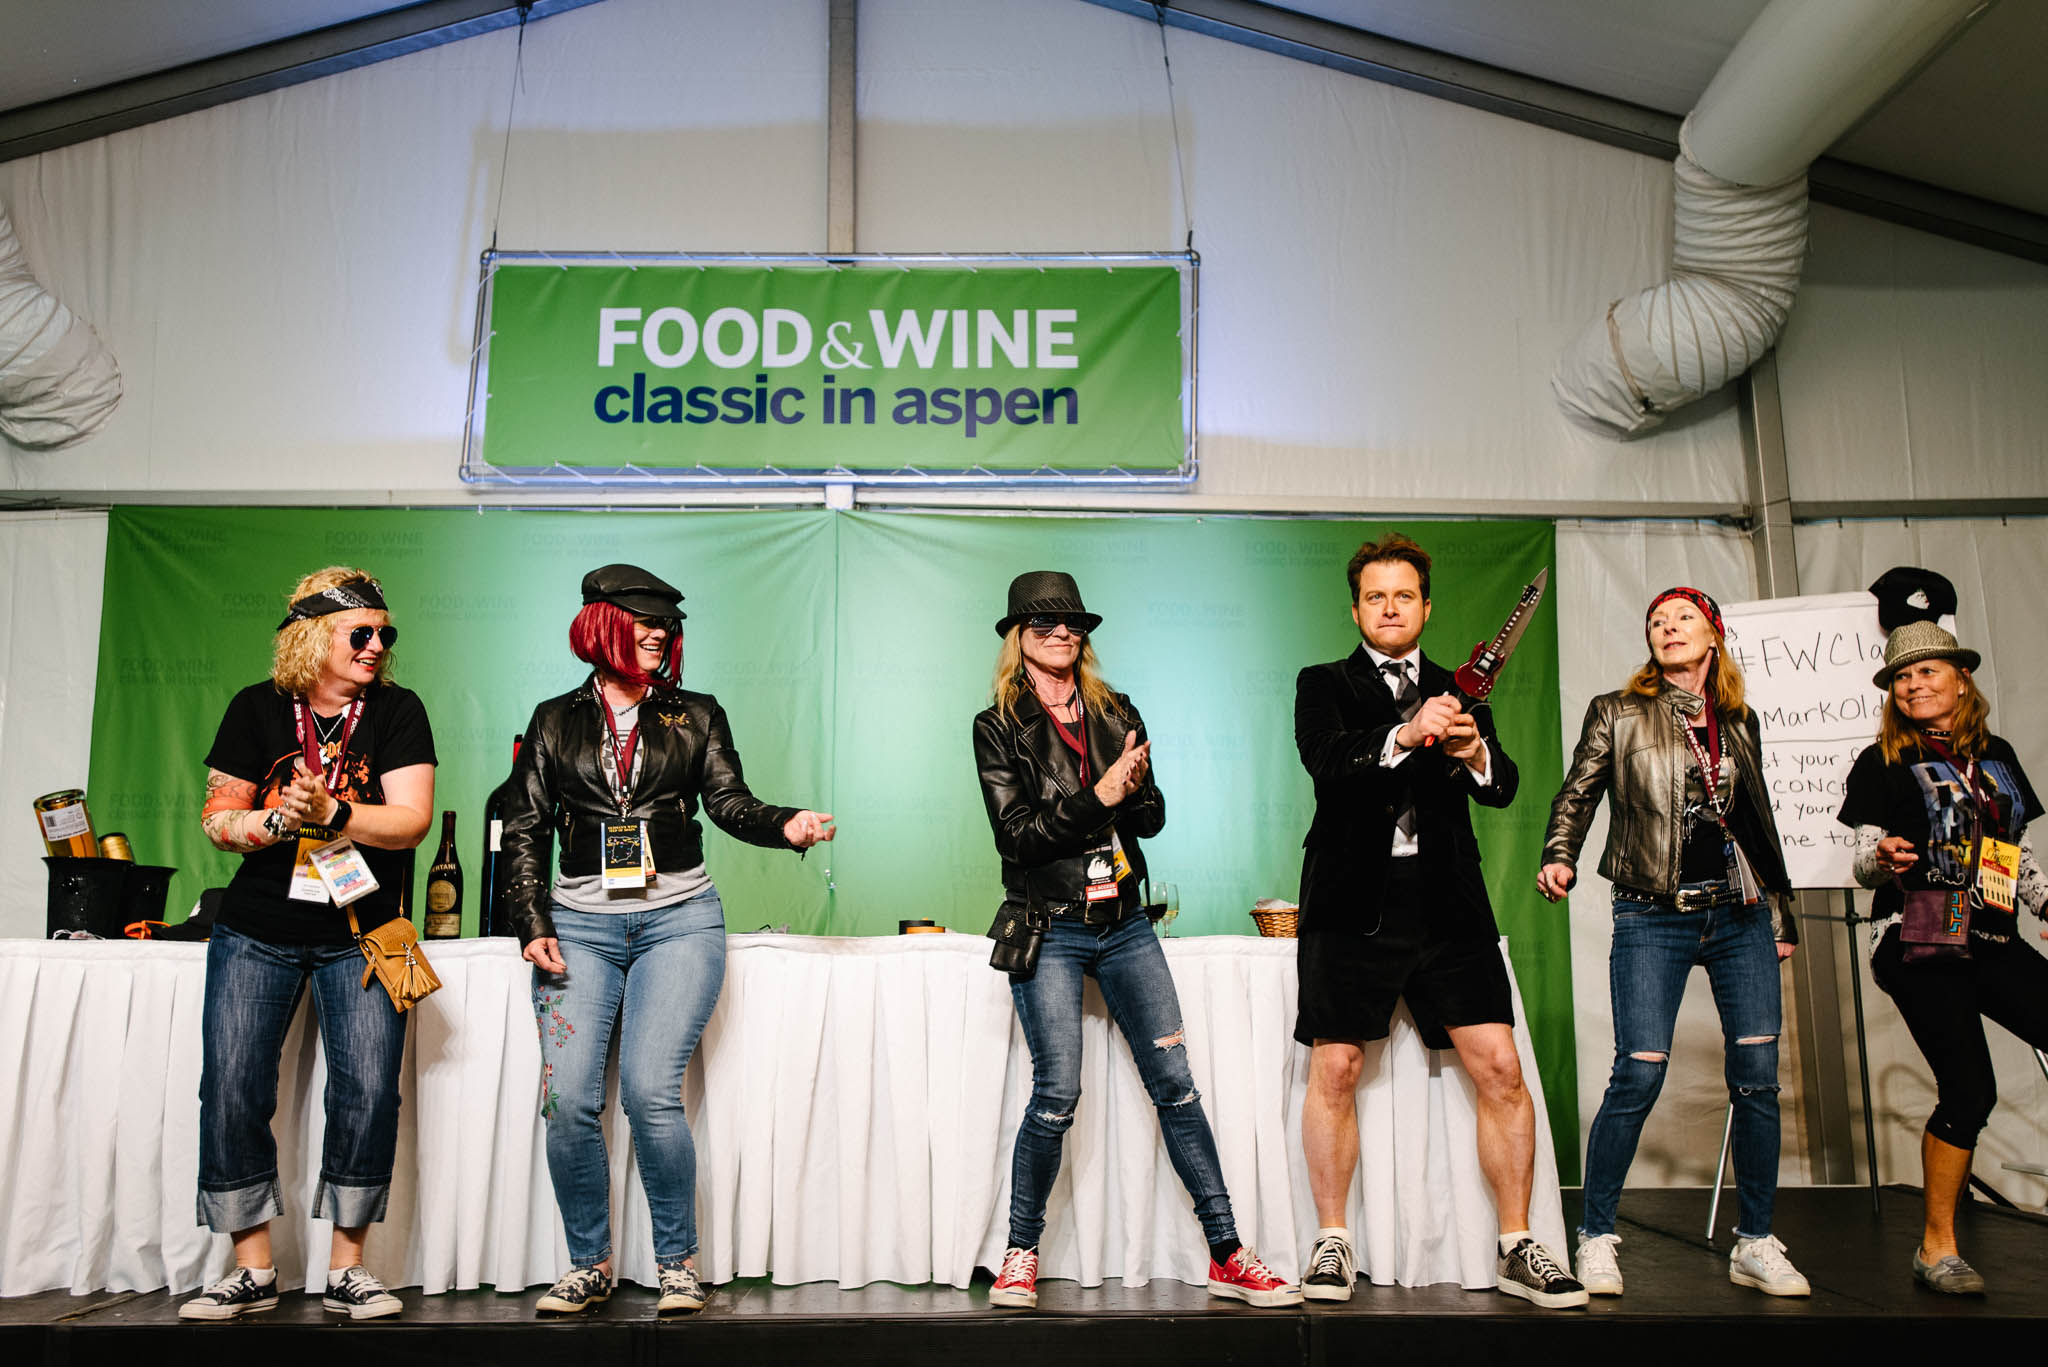 The Restaurant Industry Reckons With #Metoo At Food & Wine